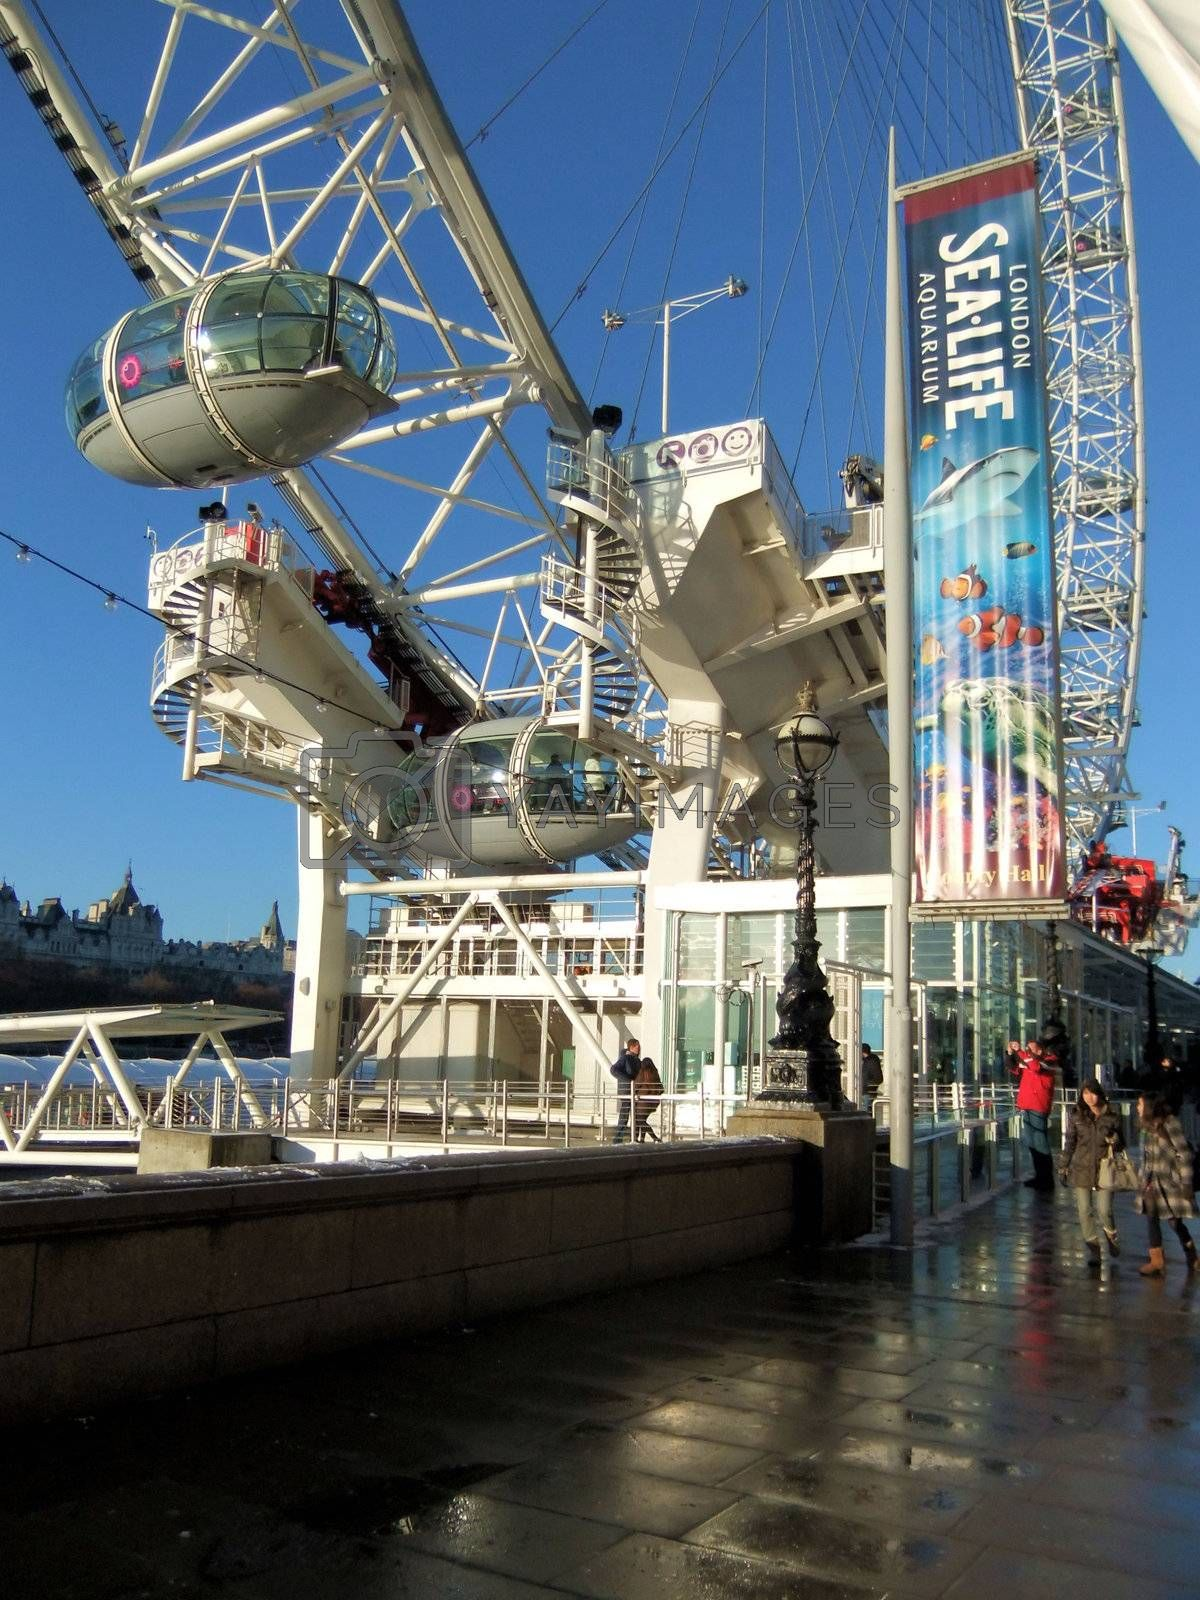 Entry area to London Eye